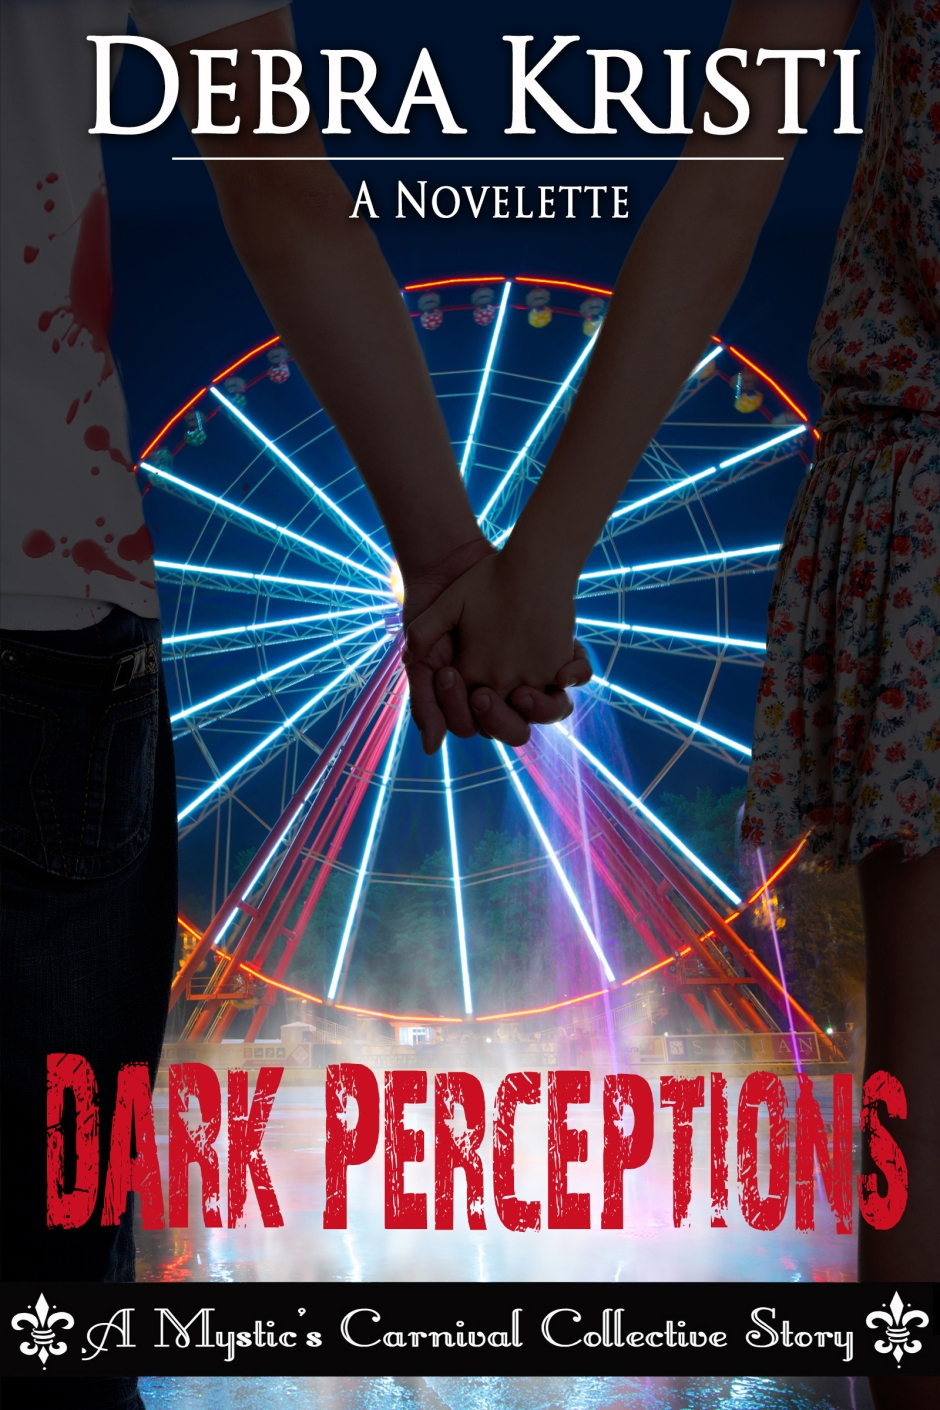 Dark Perceiptions by Debra Kristi, author